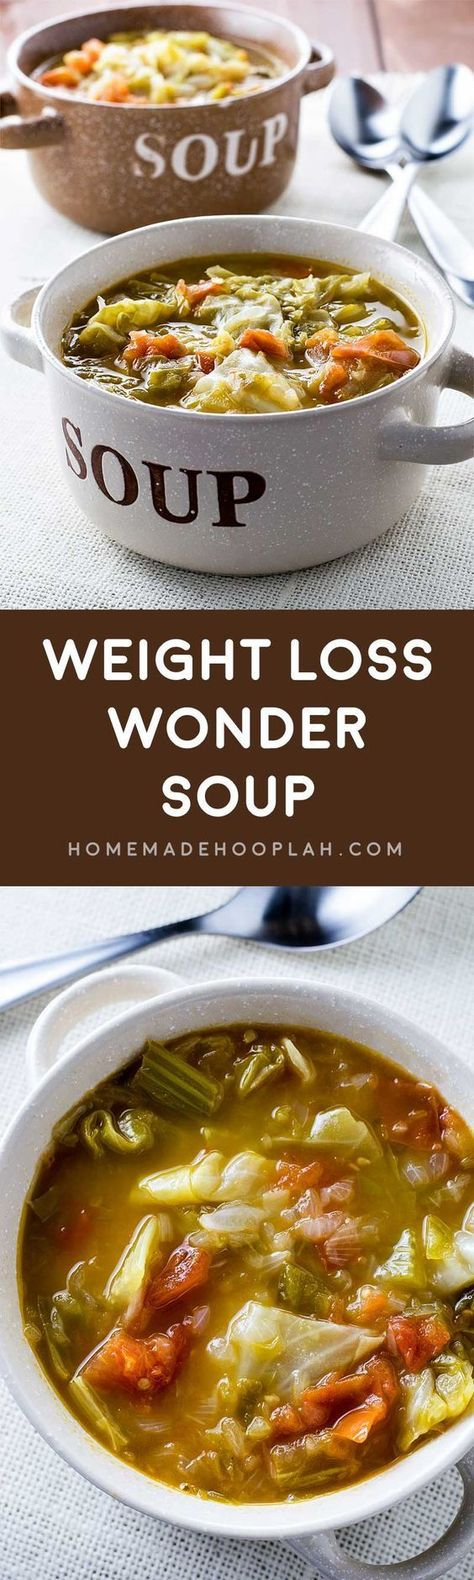 See more here ► https://www.youtube.com/watch?v=xctKmmiYuKo Tags: i need to lose weight in a week, 2 week weight loss cleanse, weight loss meals for the week - Weight Loss Wonder Soup! A filling and healthy wonder soup to assist with any diet. Vegetarian, gluten free, vegan, paleo - this combination of cooked veggies will leave you filling full enough to get past the hunger pangs. | HomemadeHooplah.com #exercise #diet #workout #fitness #health